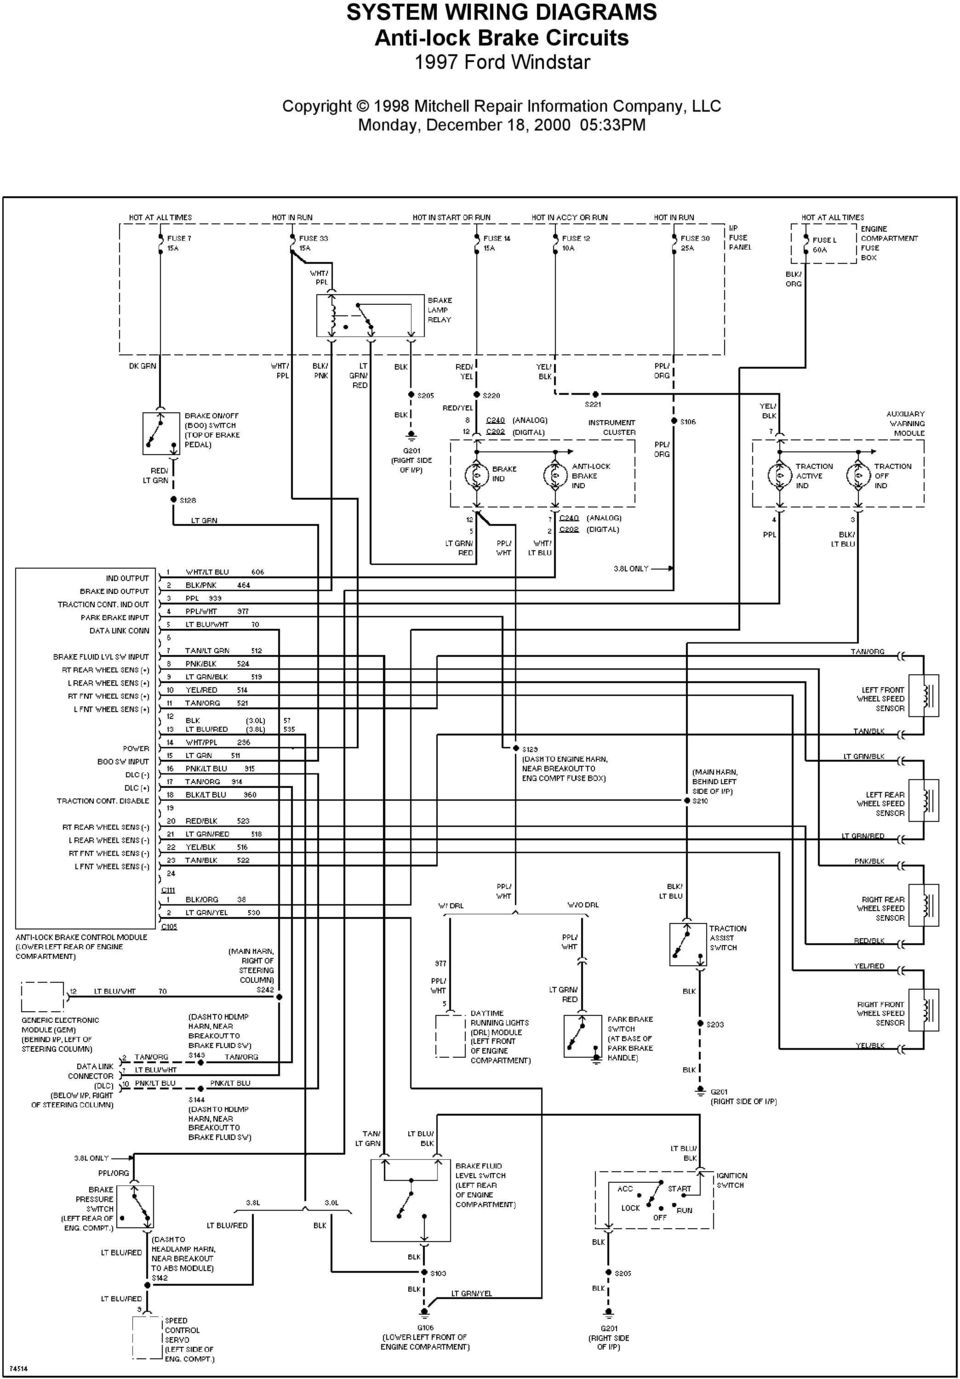 medium resolution of system wiring diagrams air conditioning circuits 1997 ford 1997 audi a4 wiring diagram 1997 chevy silverado ac wiring diagram